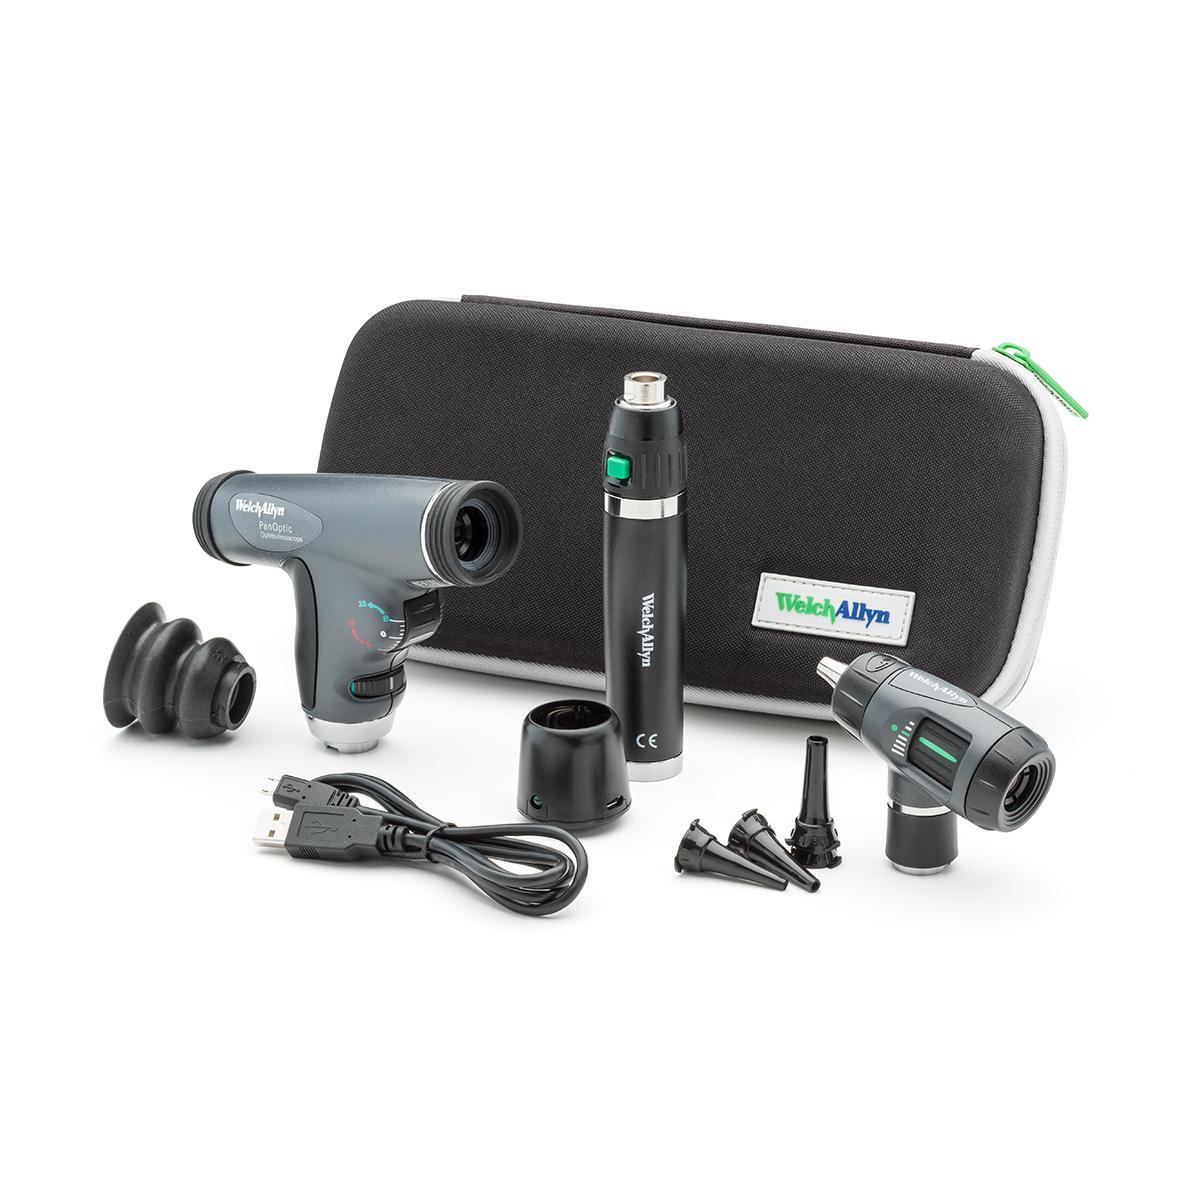 A Welch Allyn 97800-MSL Diagnostic Set, including otoscope, ophthalmoscope, handle, USB charger and zippered carry case.